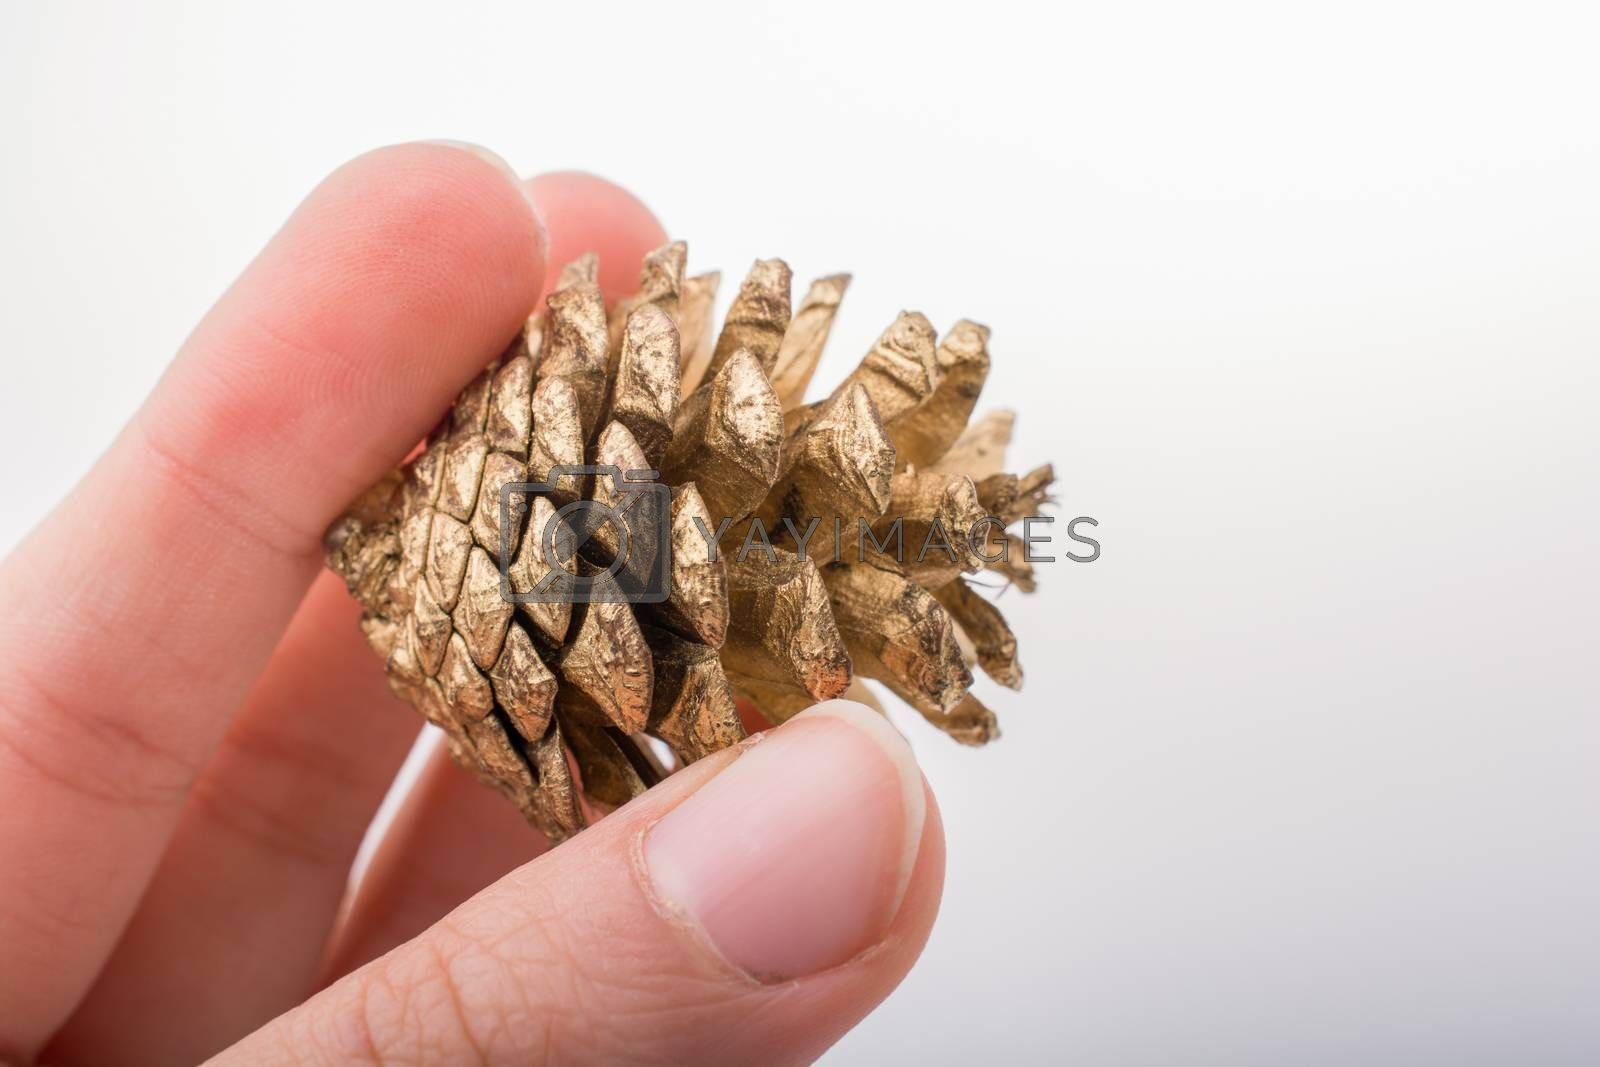 Pine cone in hand on a white background